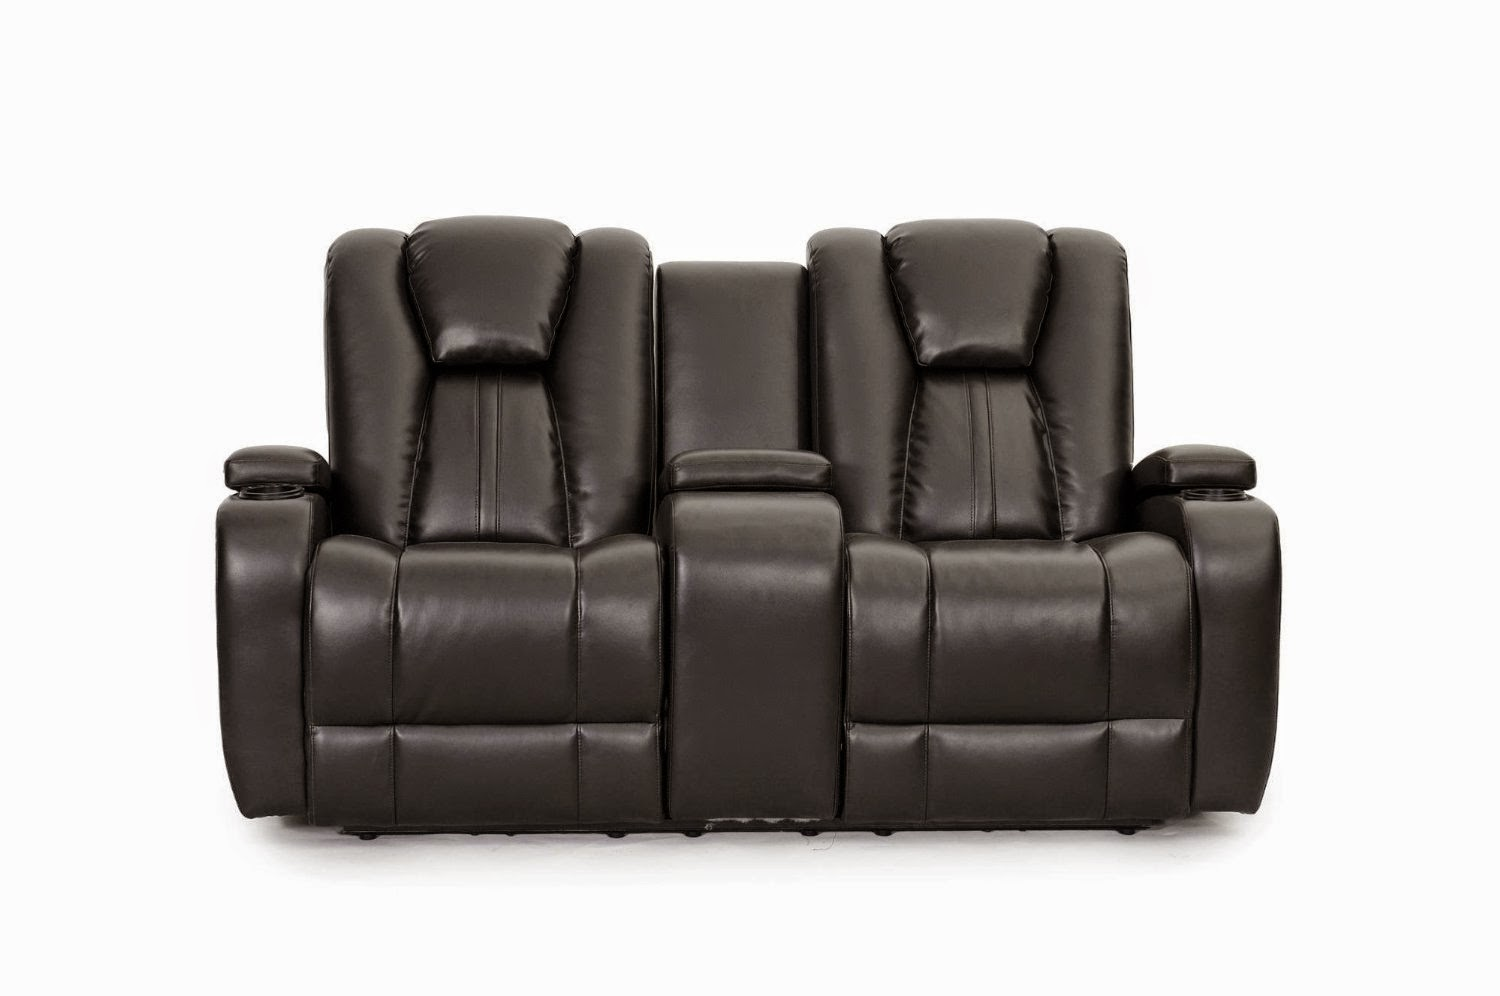 Seatcraft Reclining Sofa With Tray Table